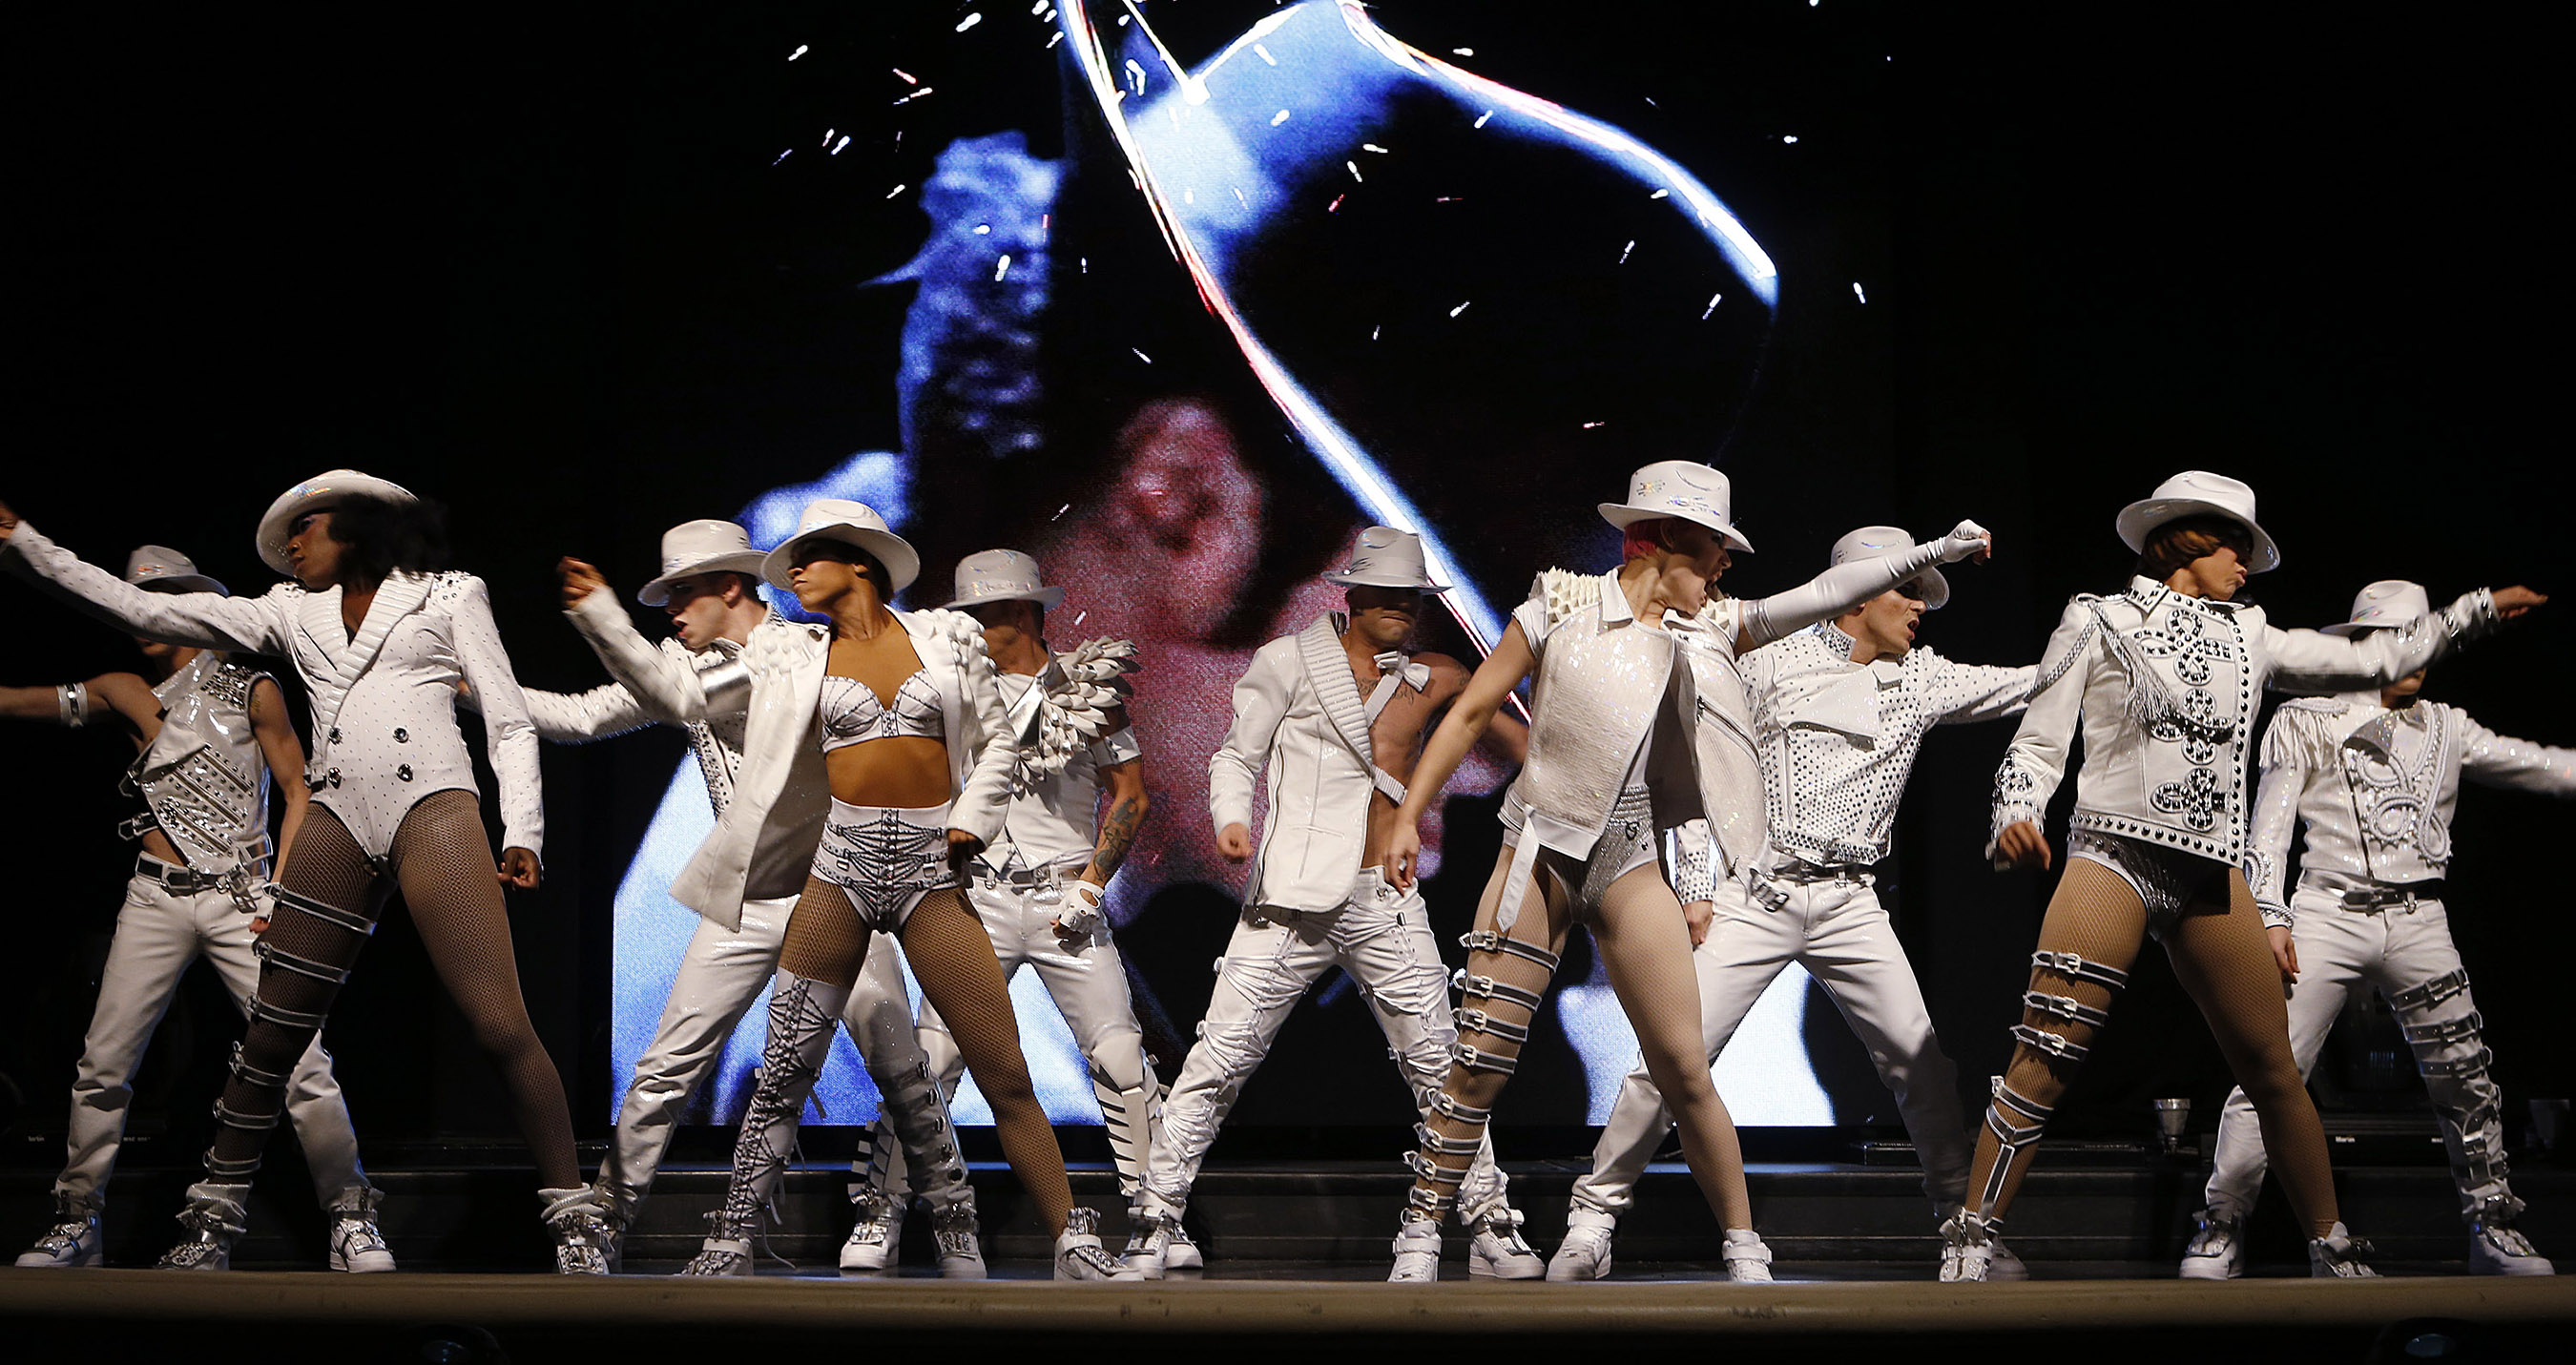 Cast of Michael Jackson ONE by Cirque du Soleil unveils show visual at Mandalay Bay. PHOTO CREDIT: Isaac Brekken/Getty Images